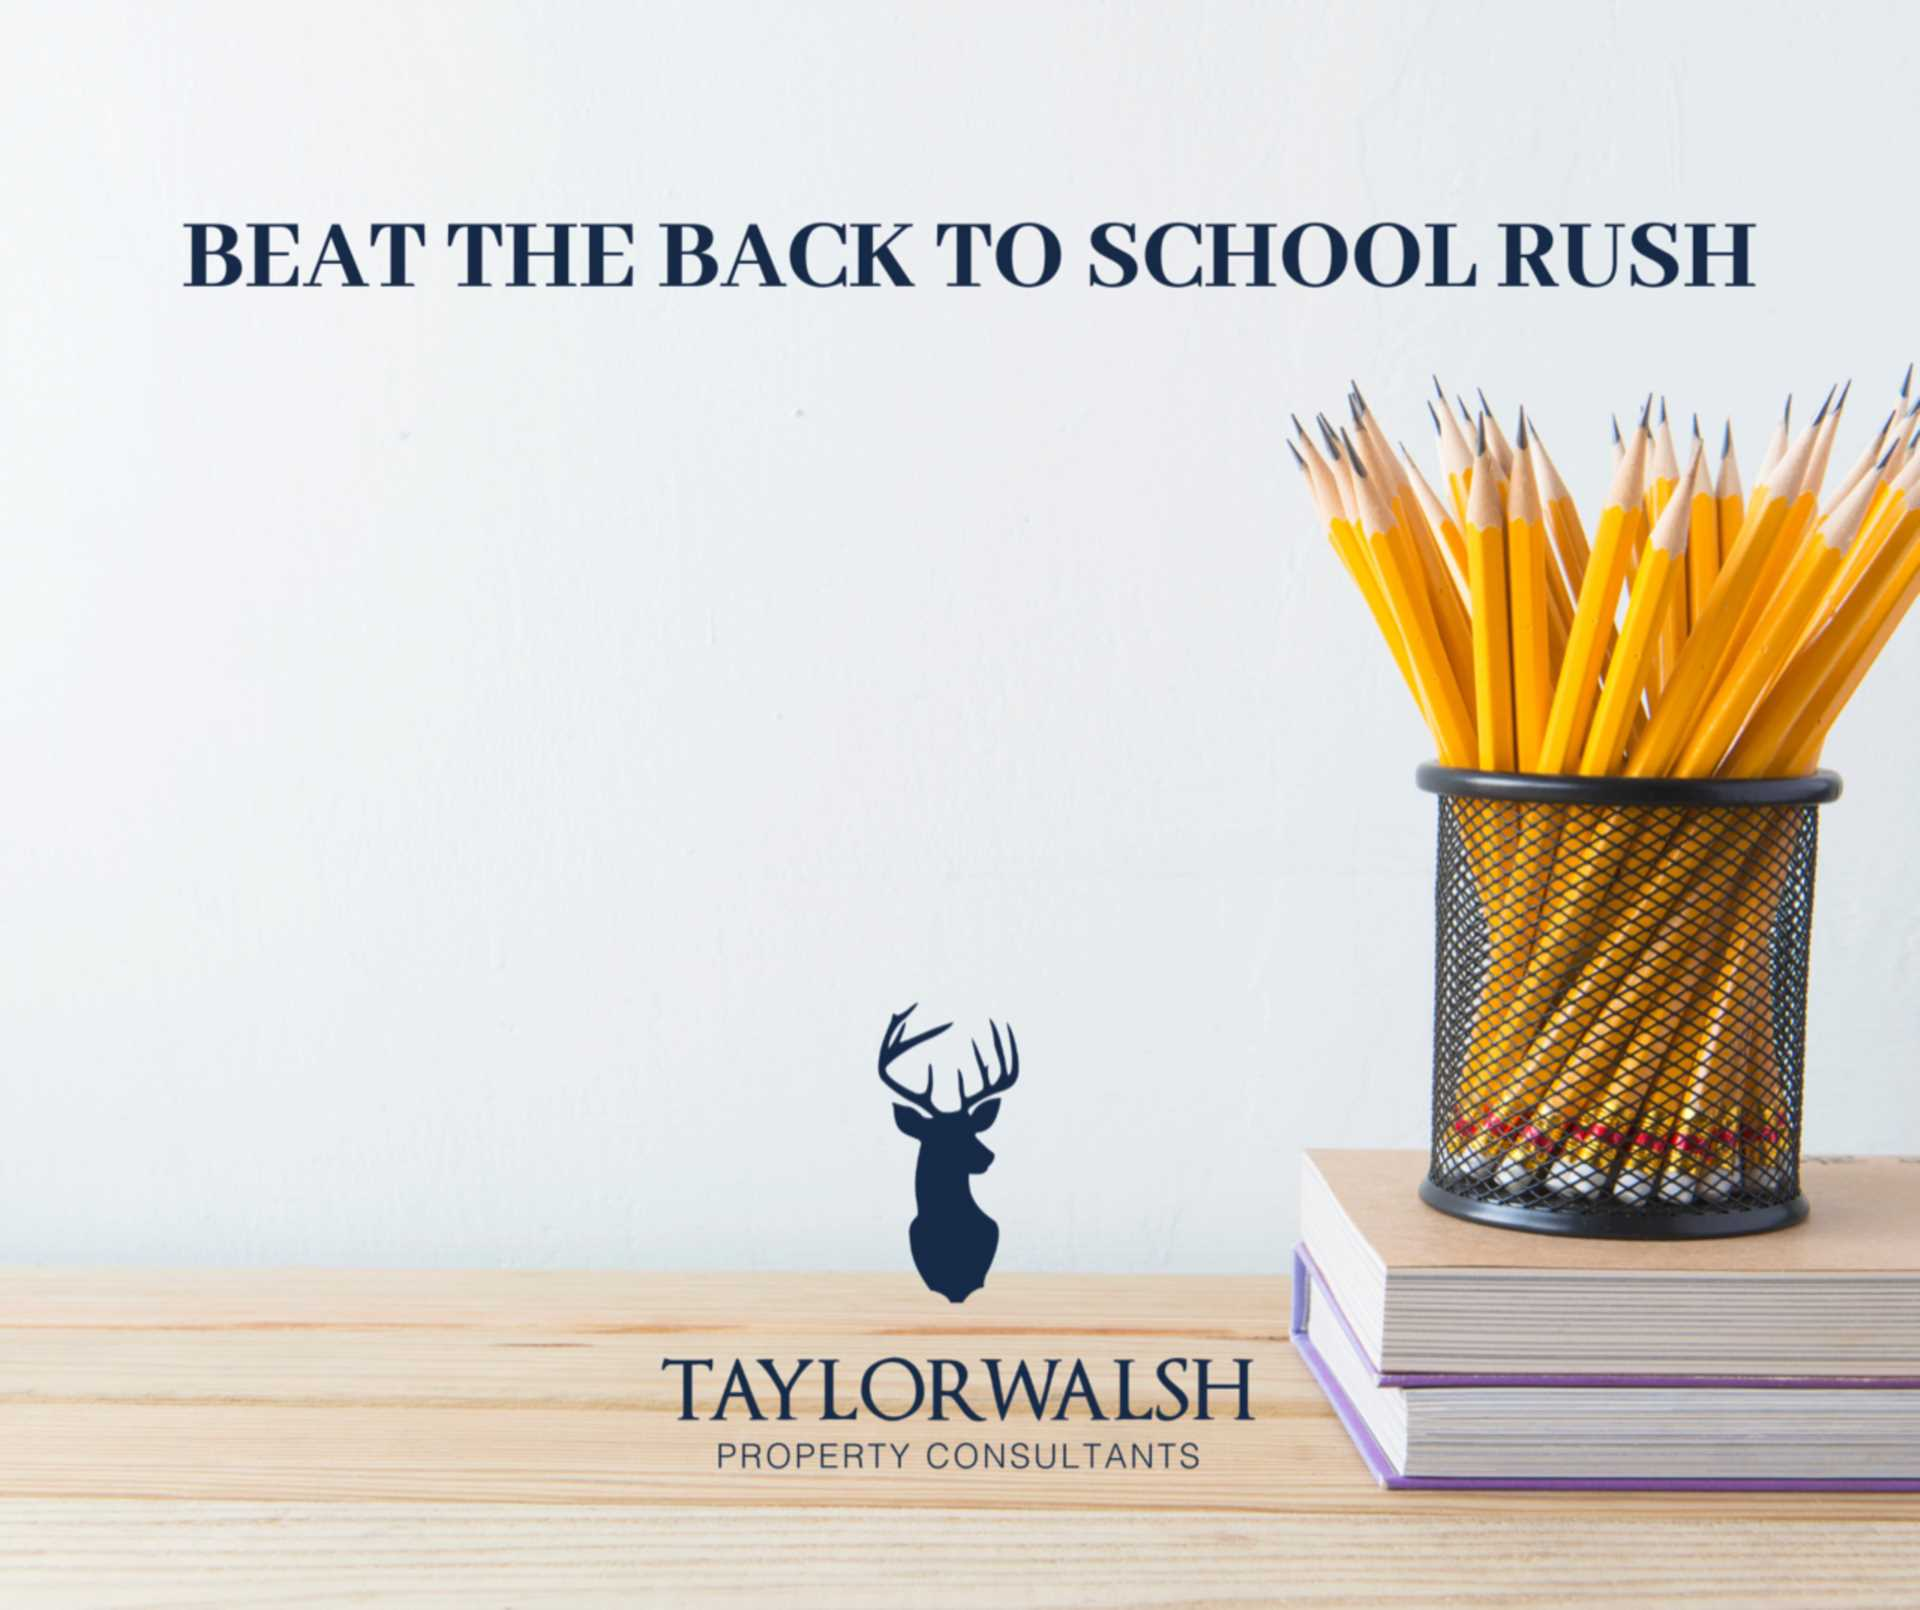 BEAT THE BACK TO SCHOOL RUSH